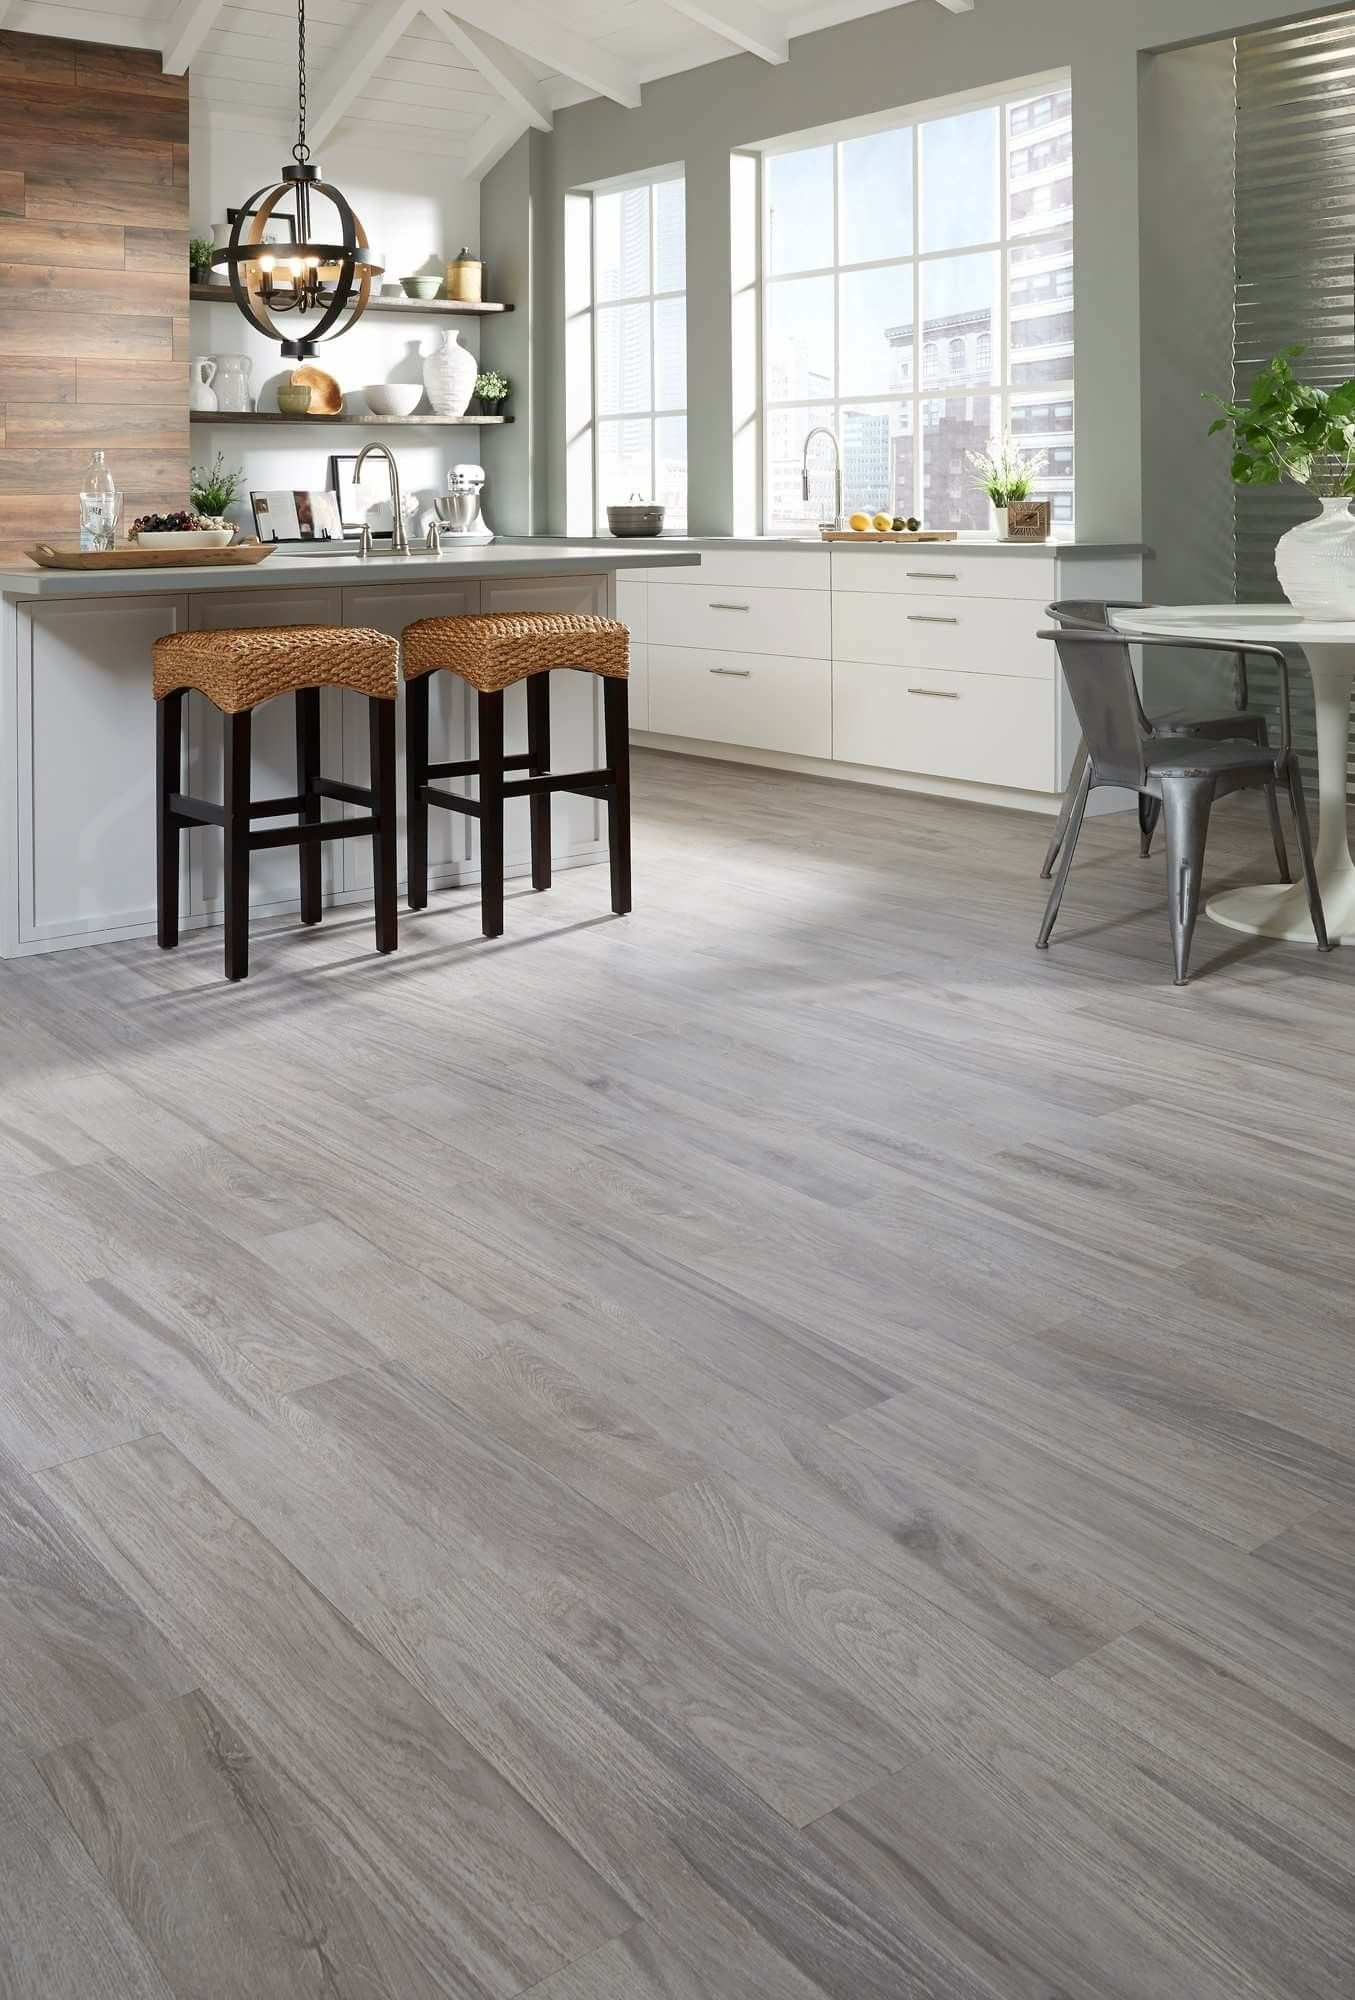 Pin By Miss Beach On Home Sweet Home Living Room Wood Floor